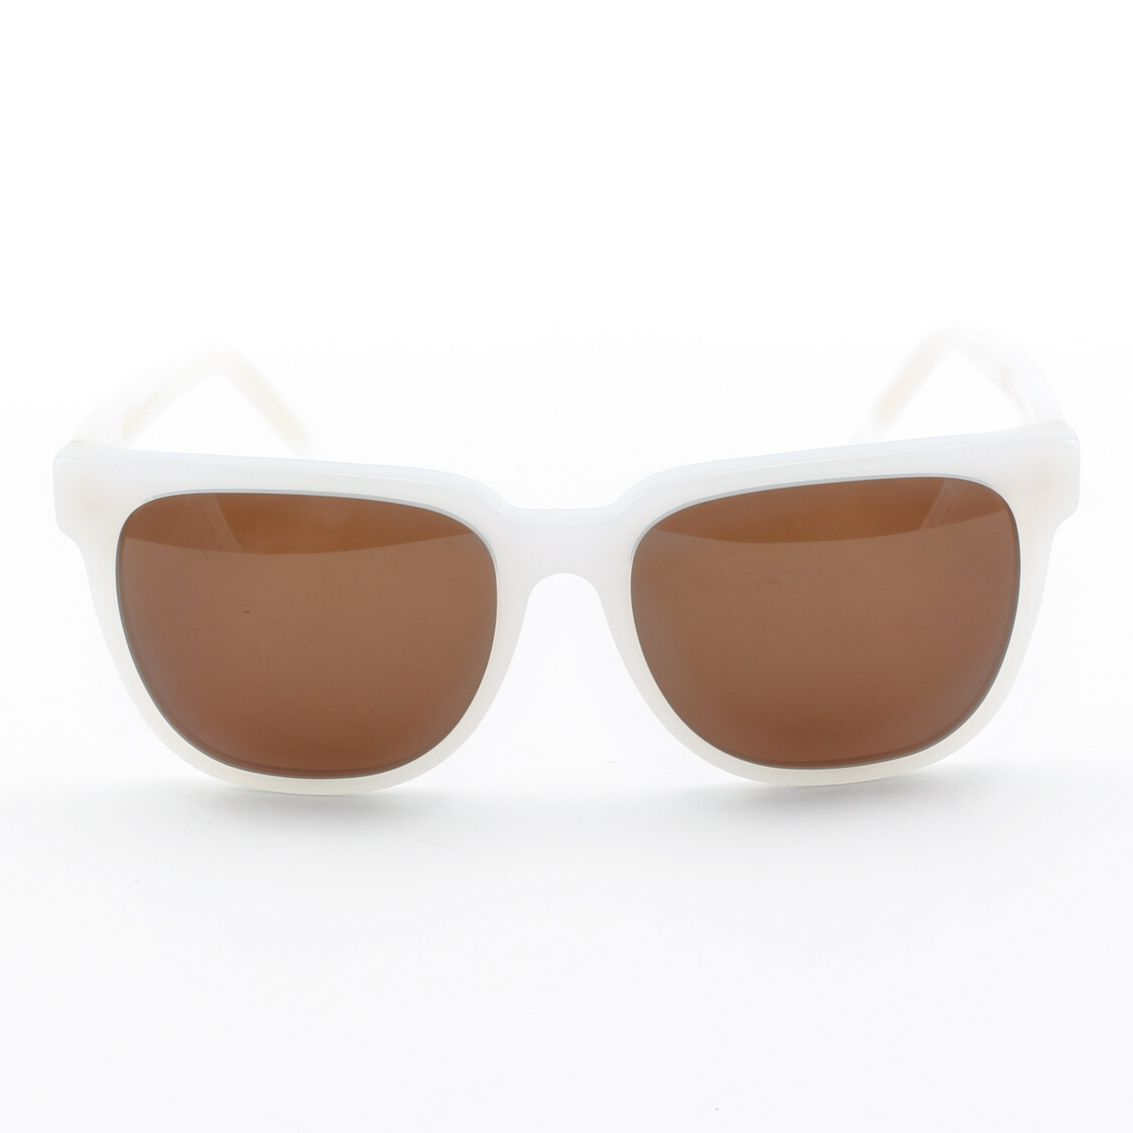 Super People 289 Sunglasses Ivory with Brown Zeiss Lenses by RETROSUPERFUTURE - Theaspecs.com